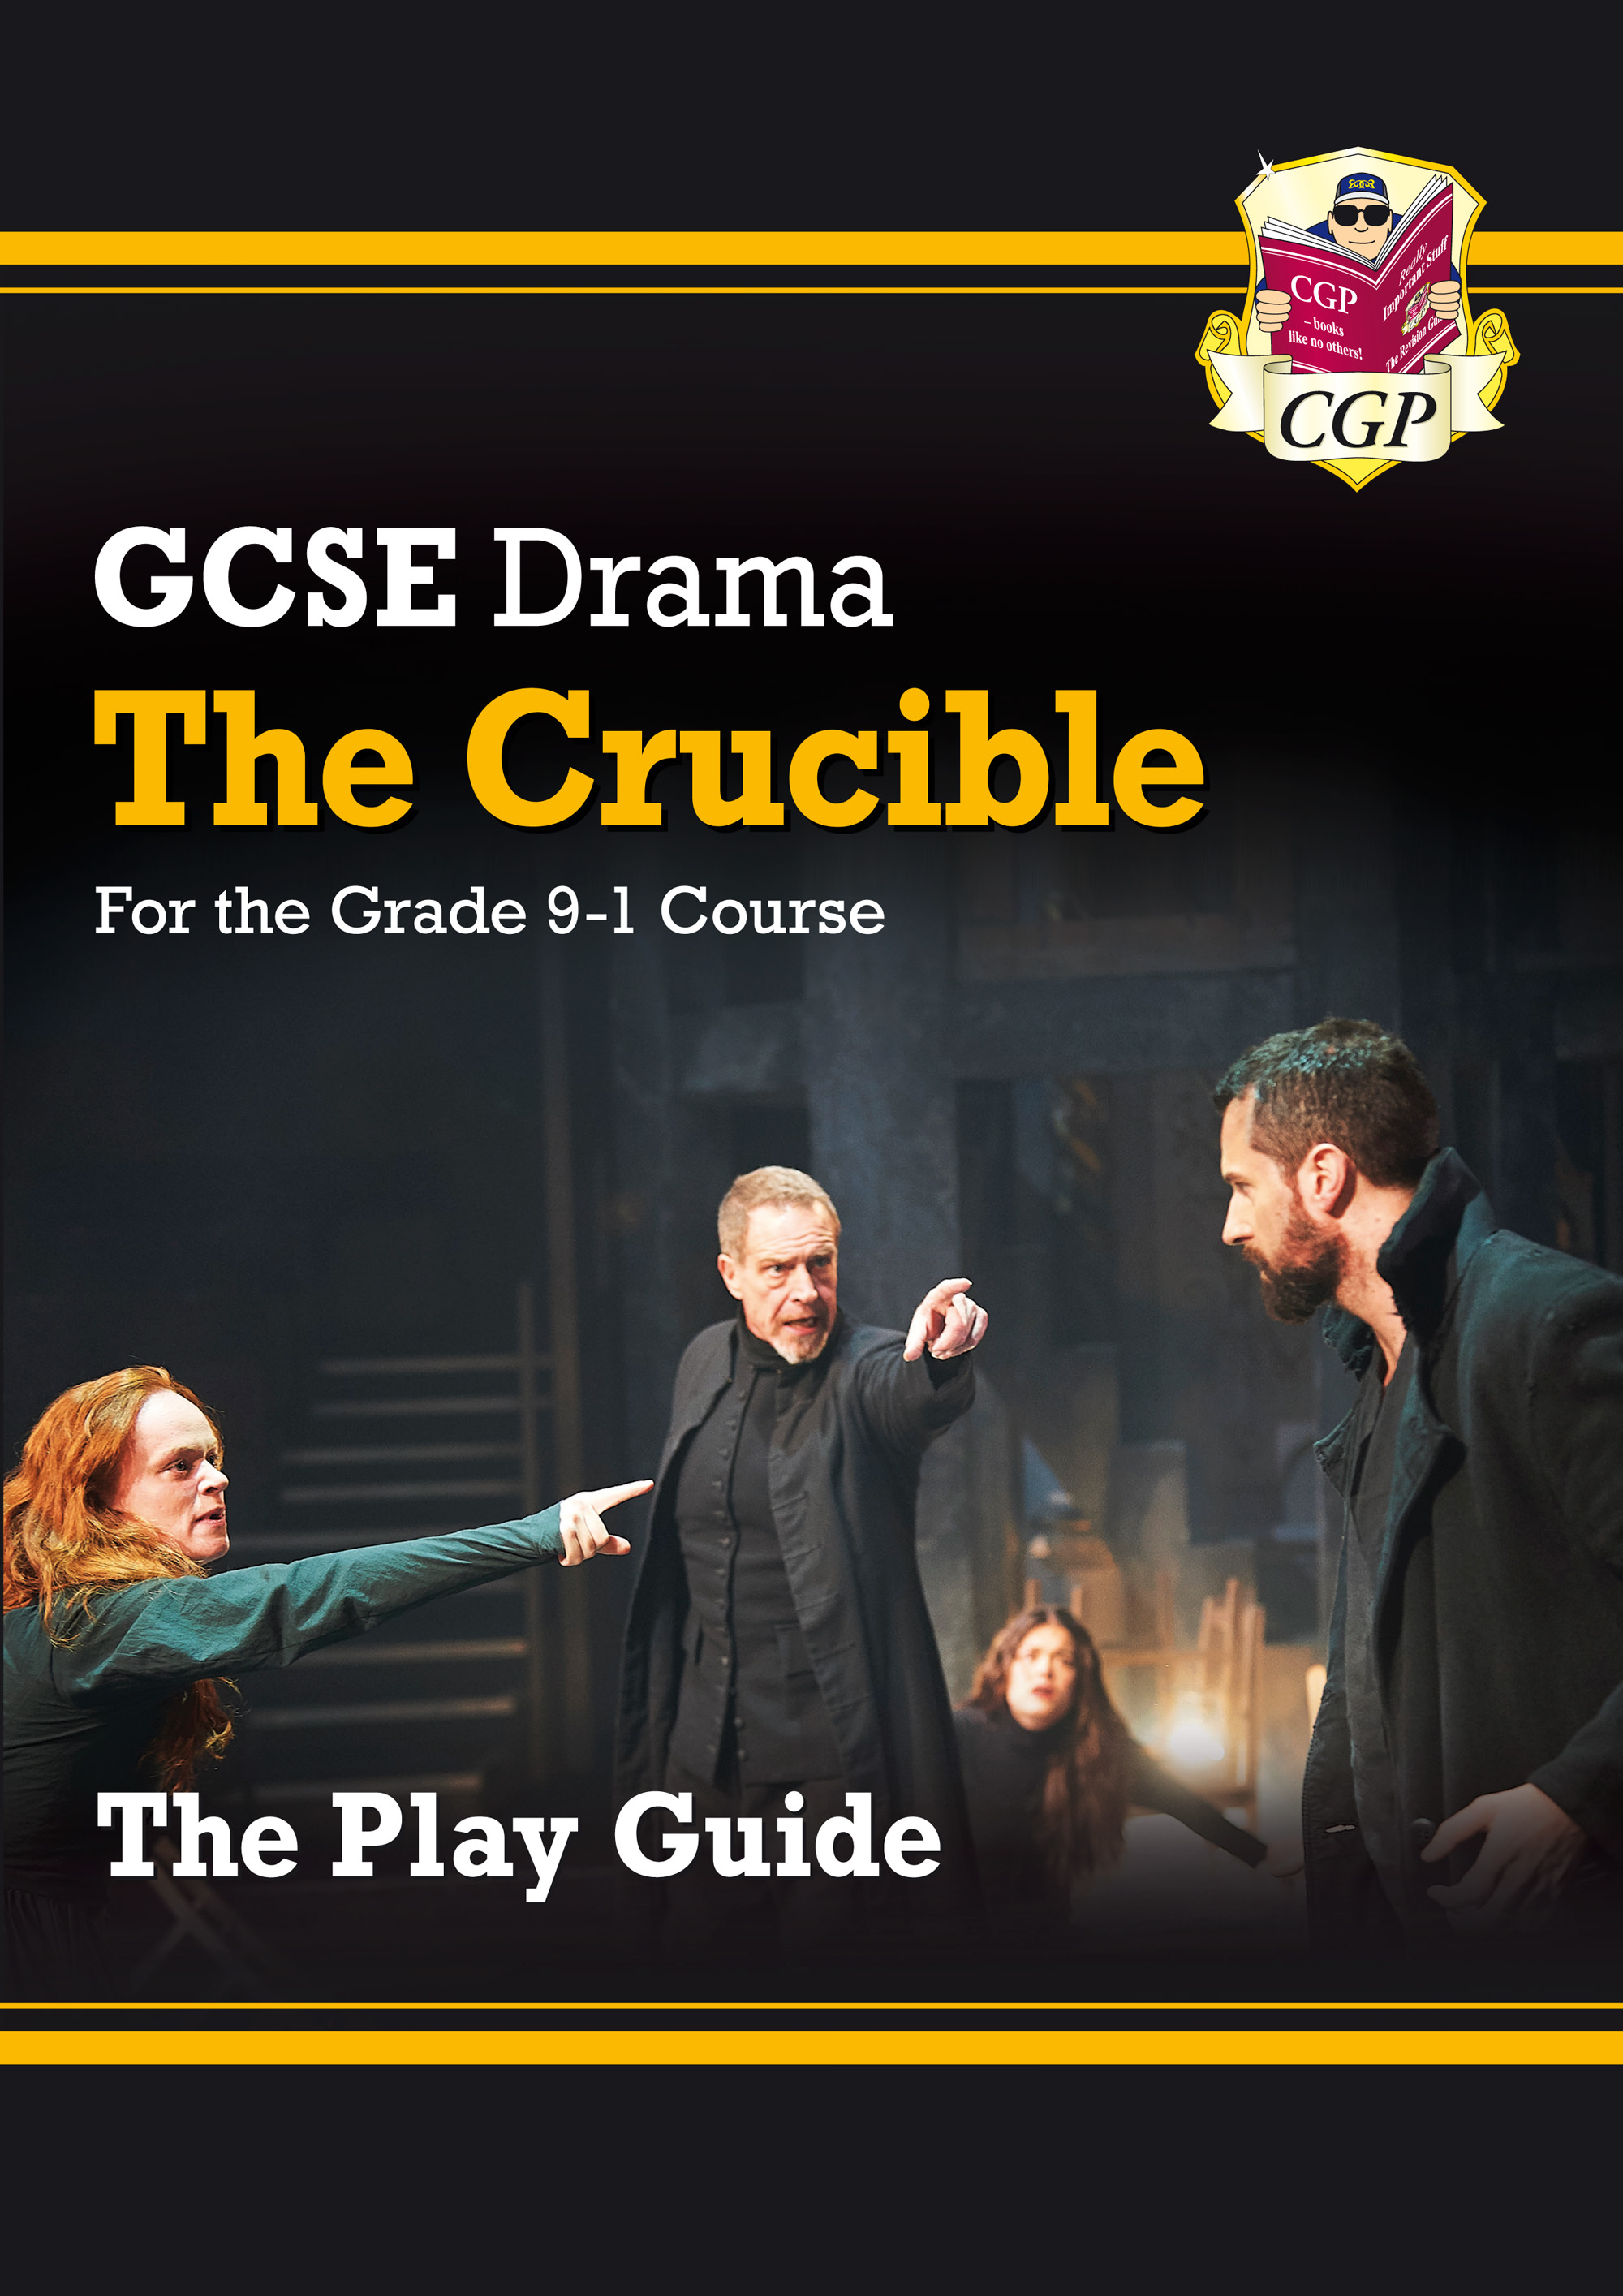 DMPC41 - Grade 9-1 GCSE Drama Play Guide - The Crucible